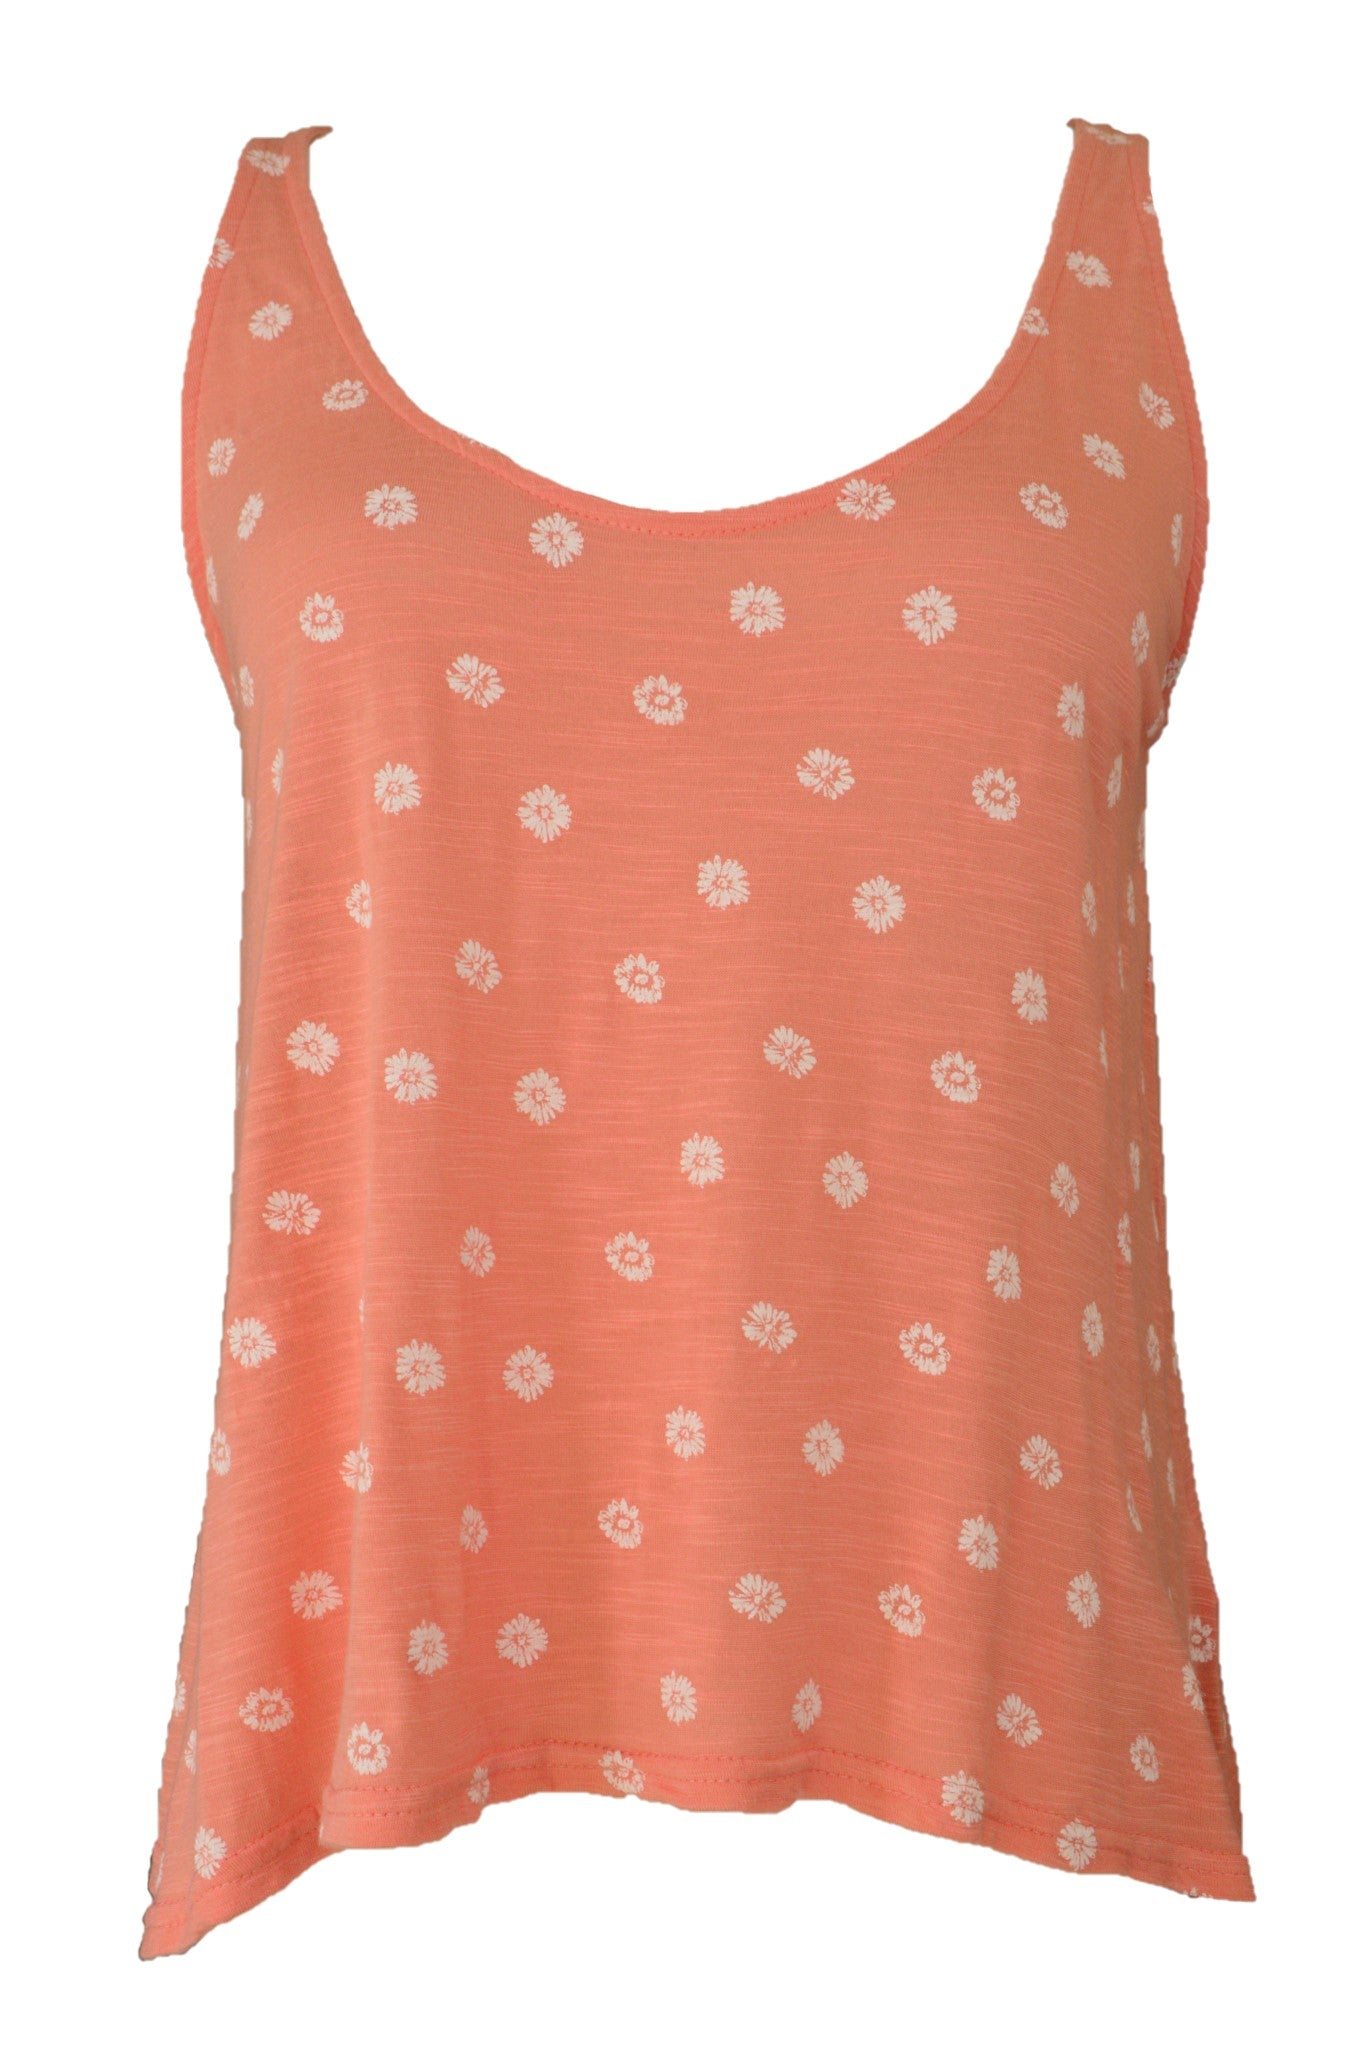 Lee Cooper apricot orange tank top